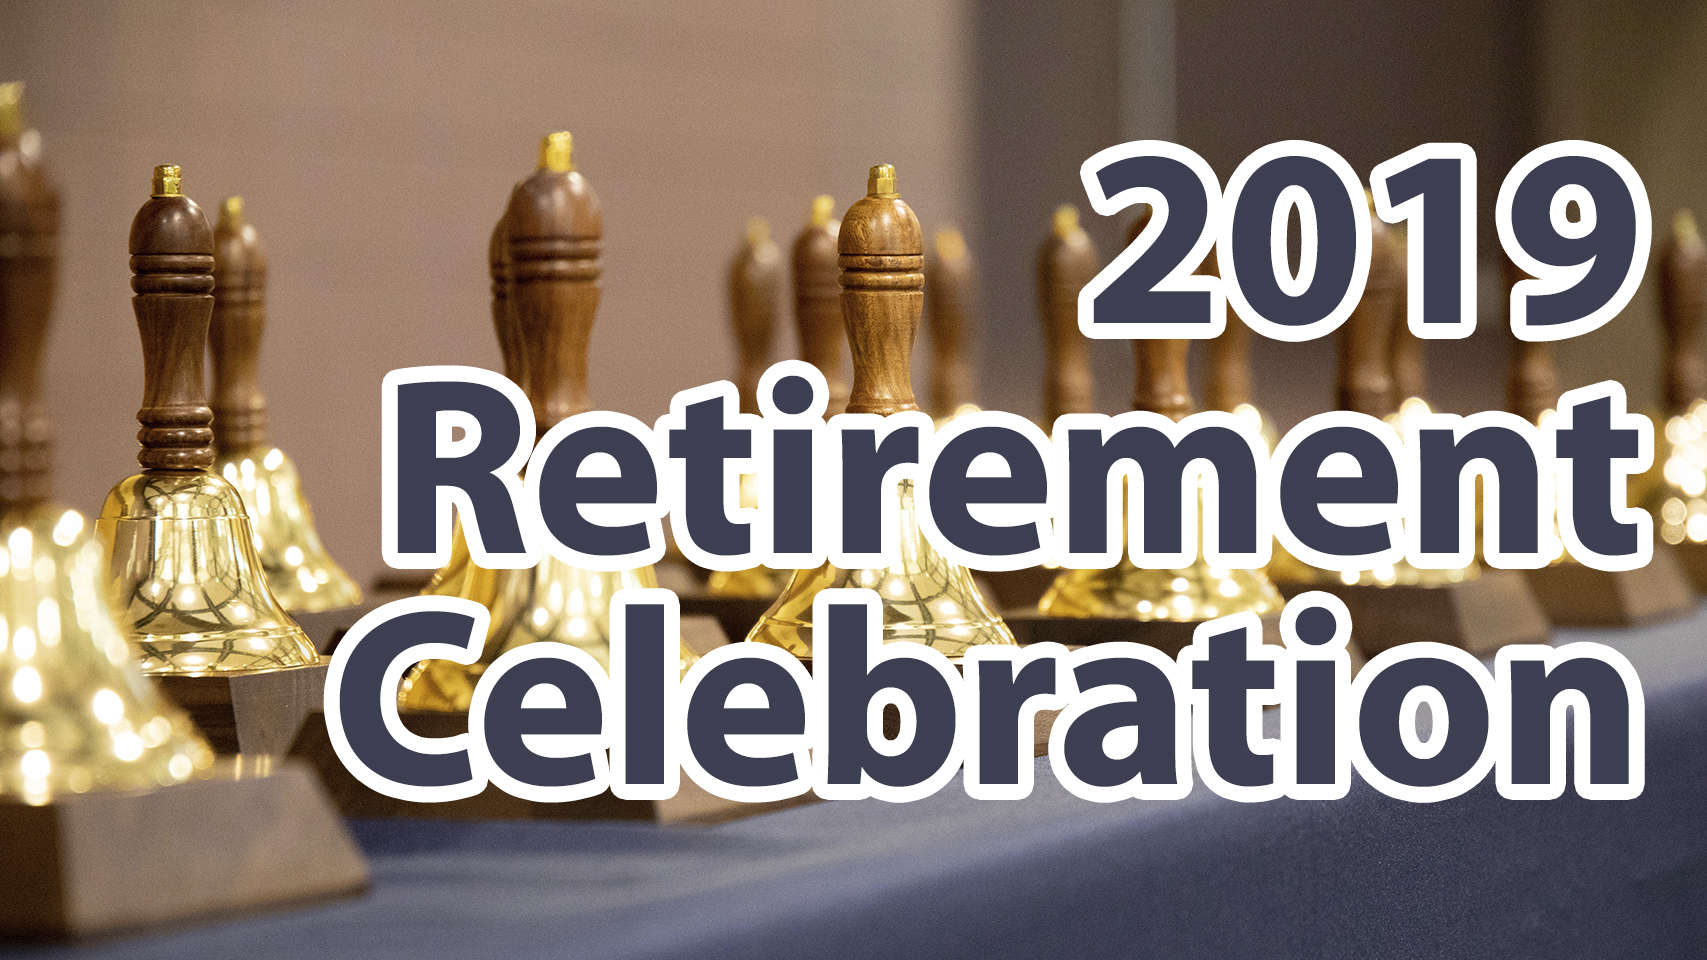 Retirement and Years of Service Celebration